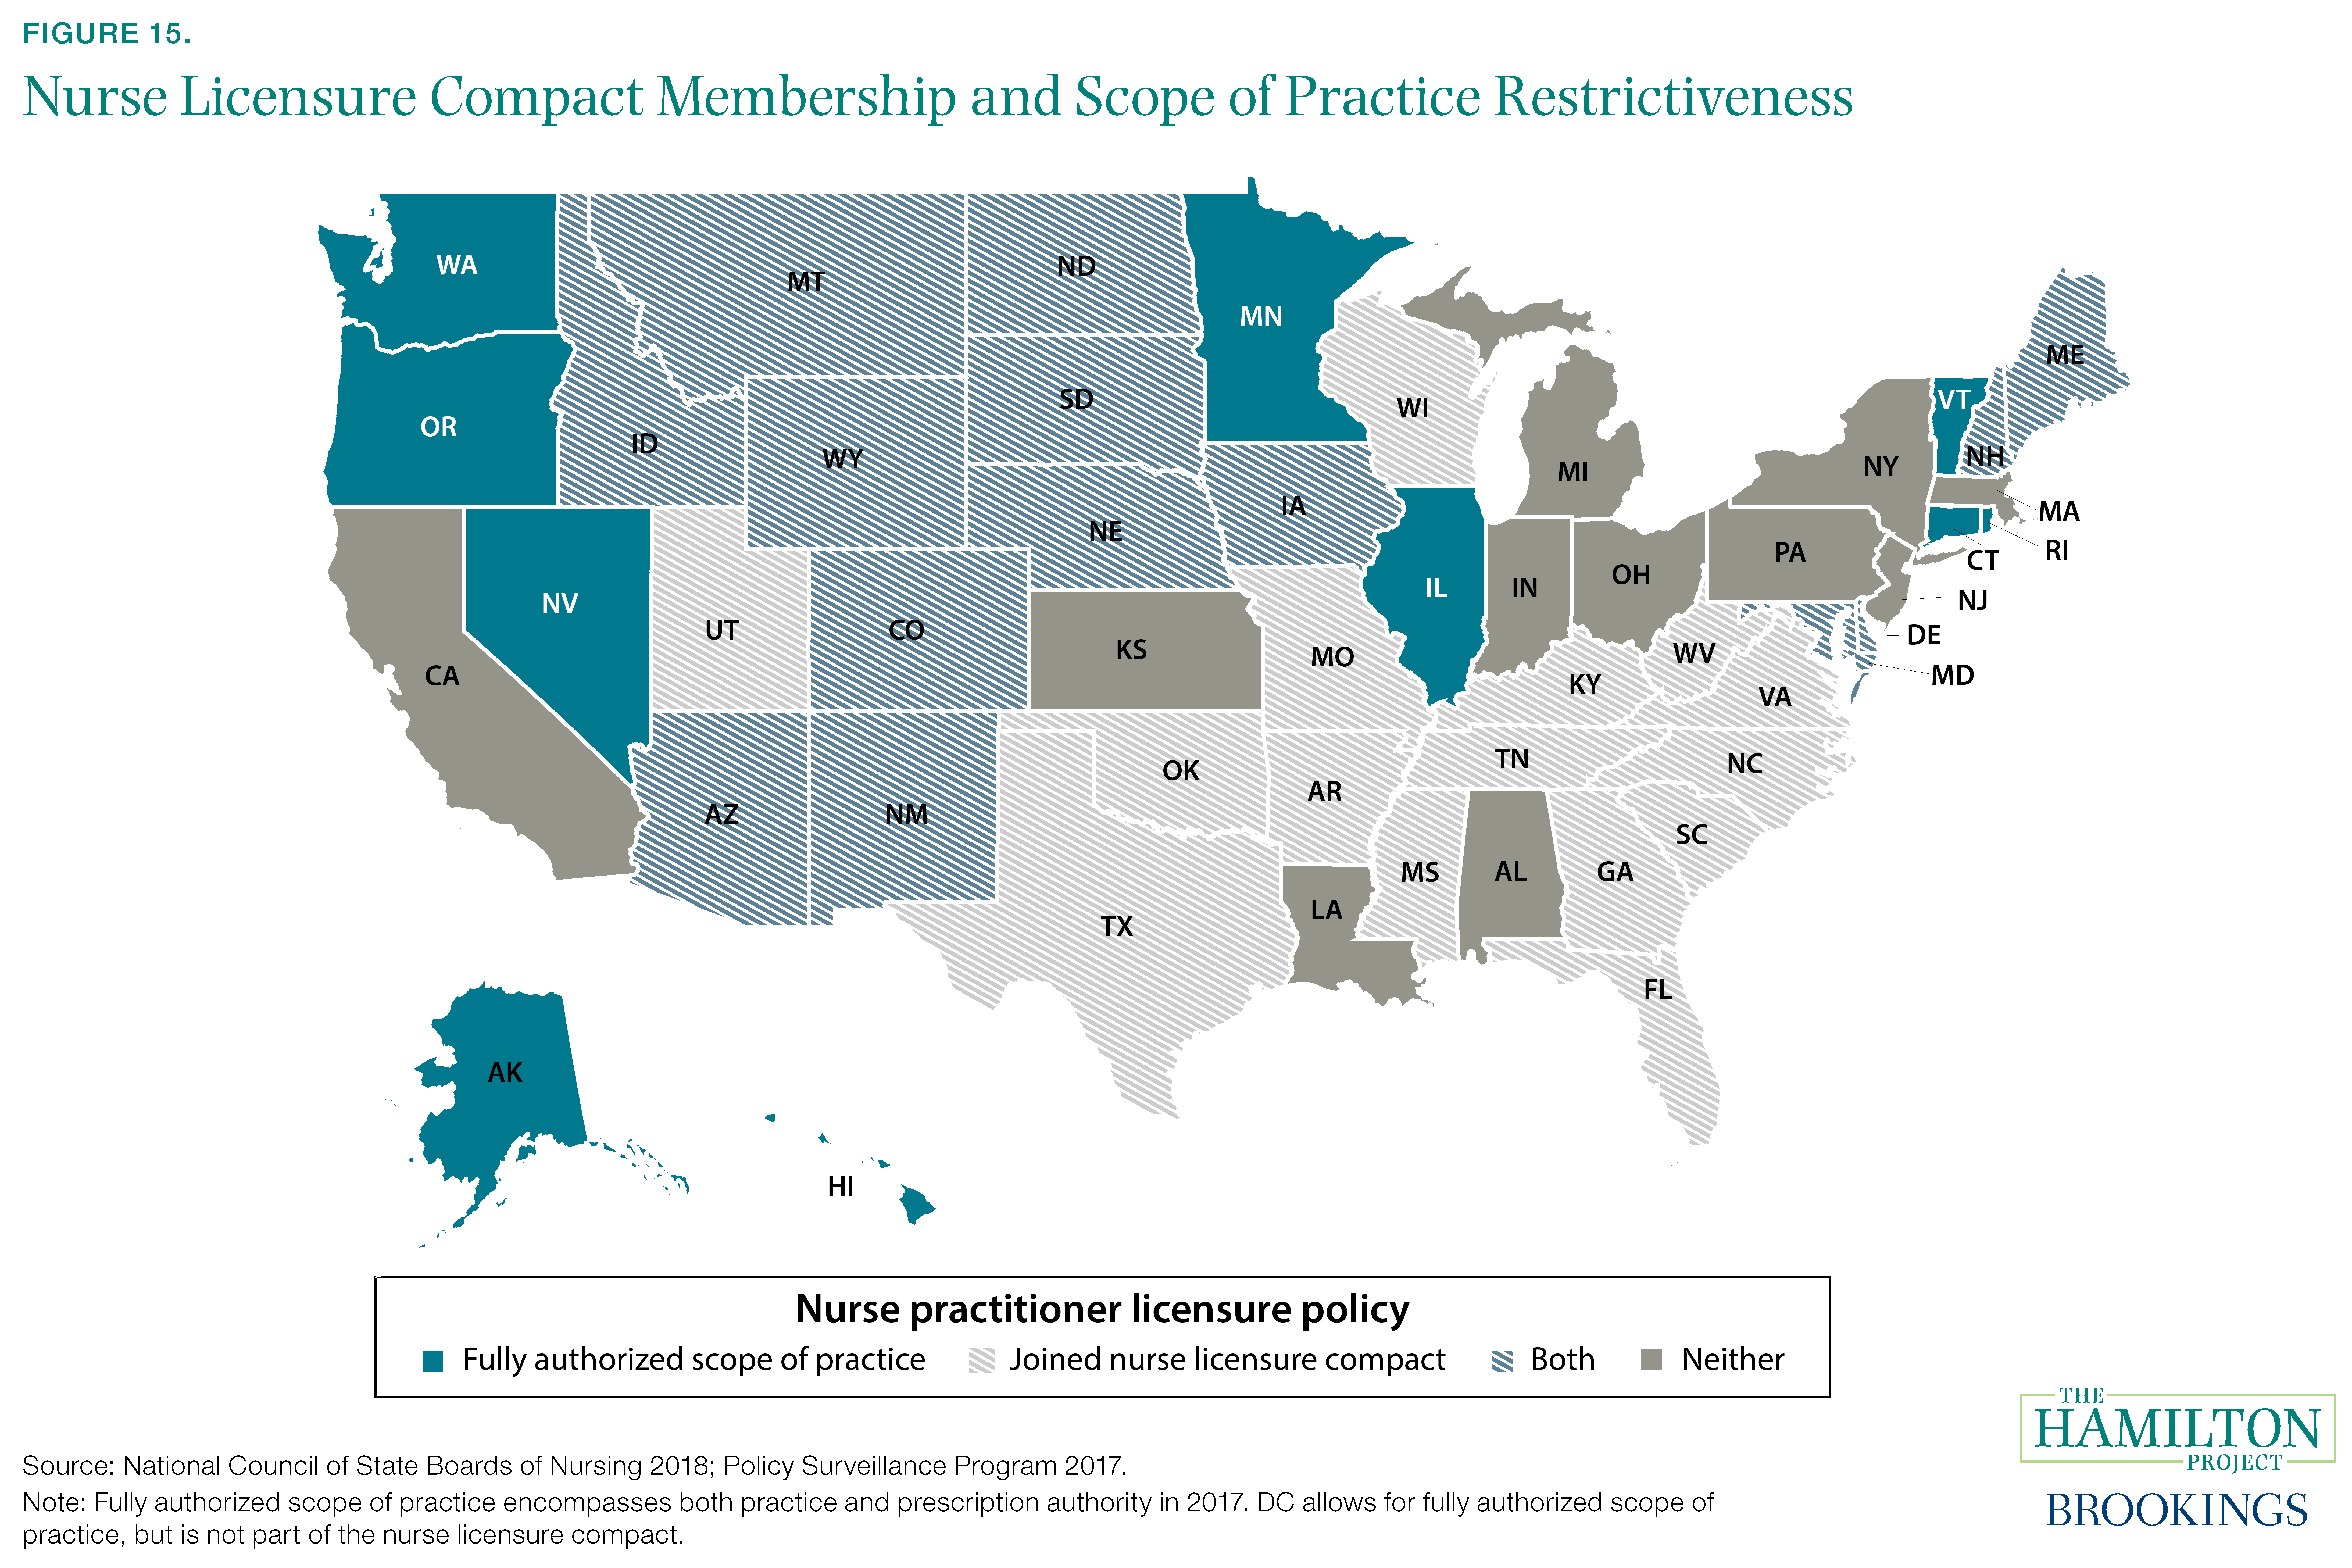 Figure 15. Nurse Licensure Compact Membership and Scope of Practice Restrictiveness